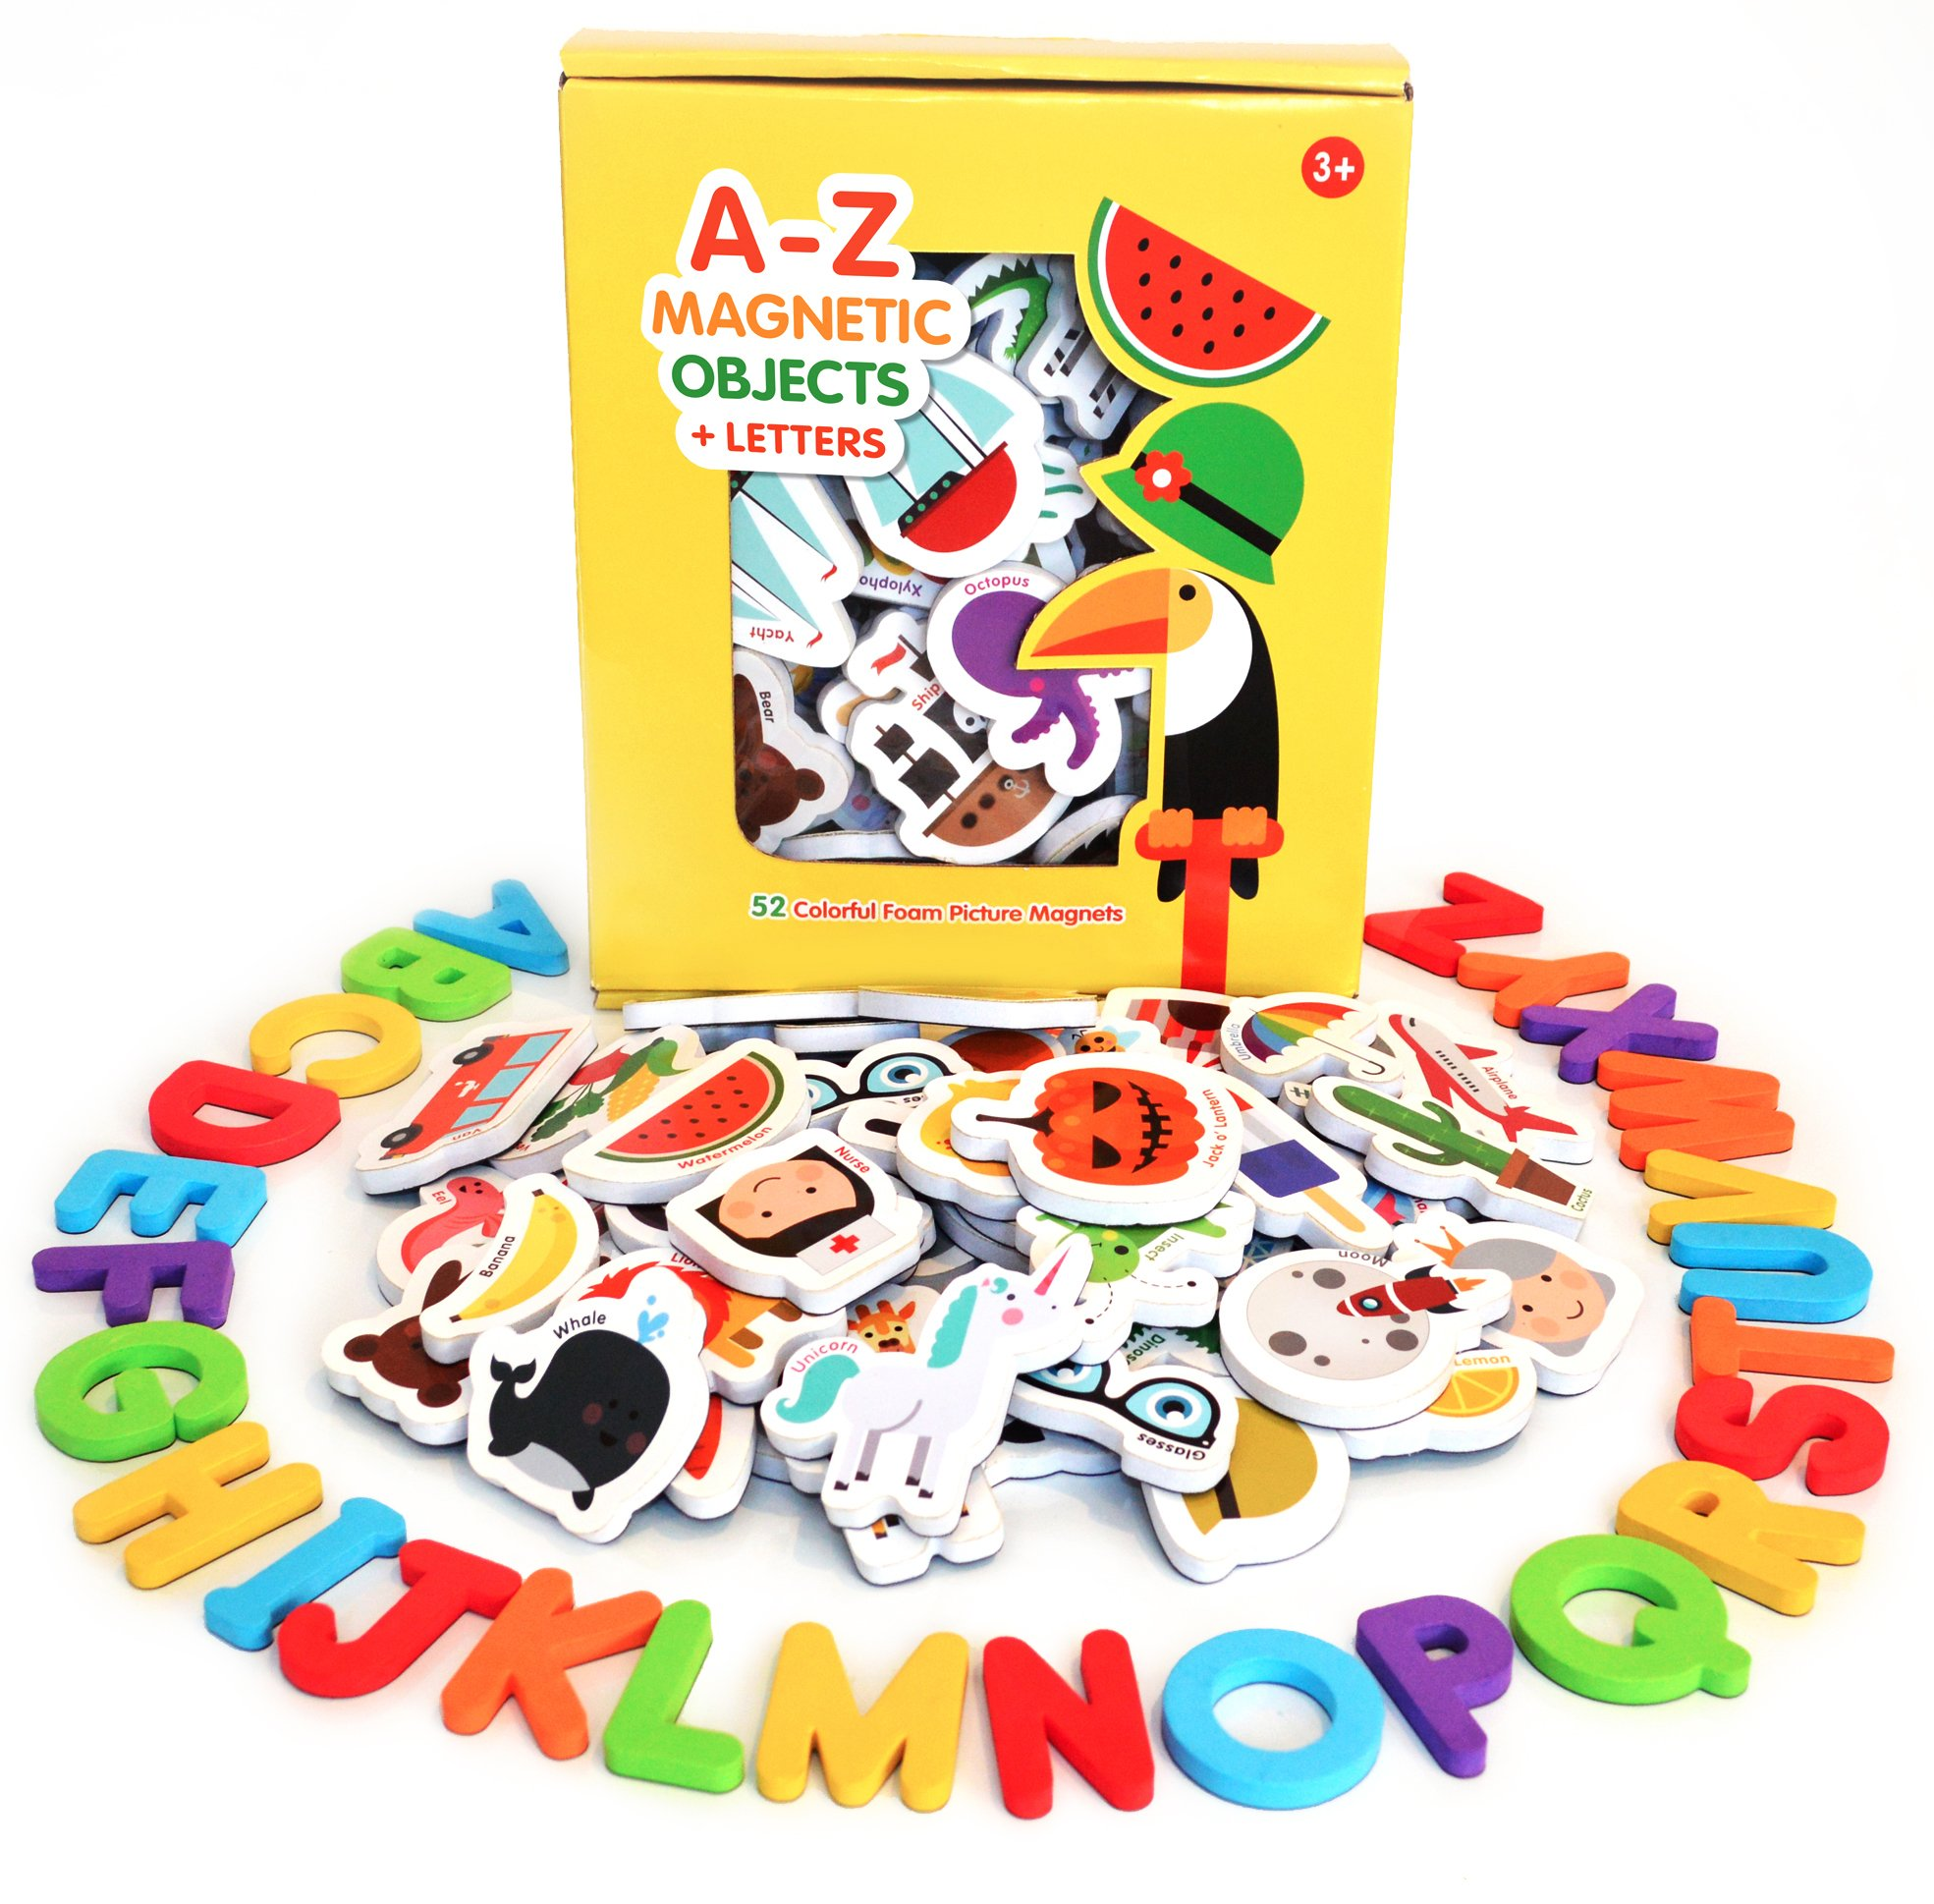 Curious Columbus Magnetic Objects and Letters. Set of 78 Foam Magnets Including 52 Pictures and 26 Uppercase Alphabet Magnets from A-Z. Best Educational Toy for Preschool Learning by Curious Columbus